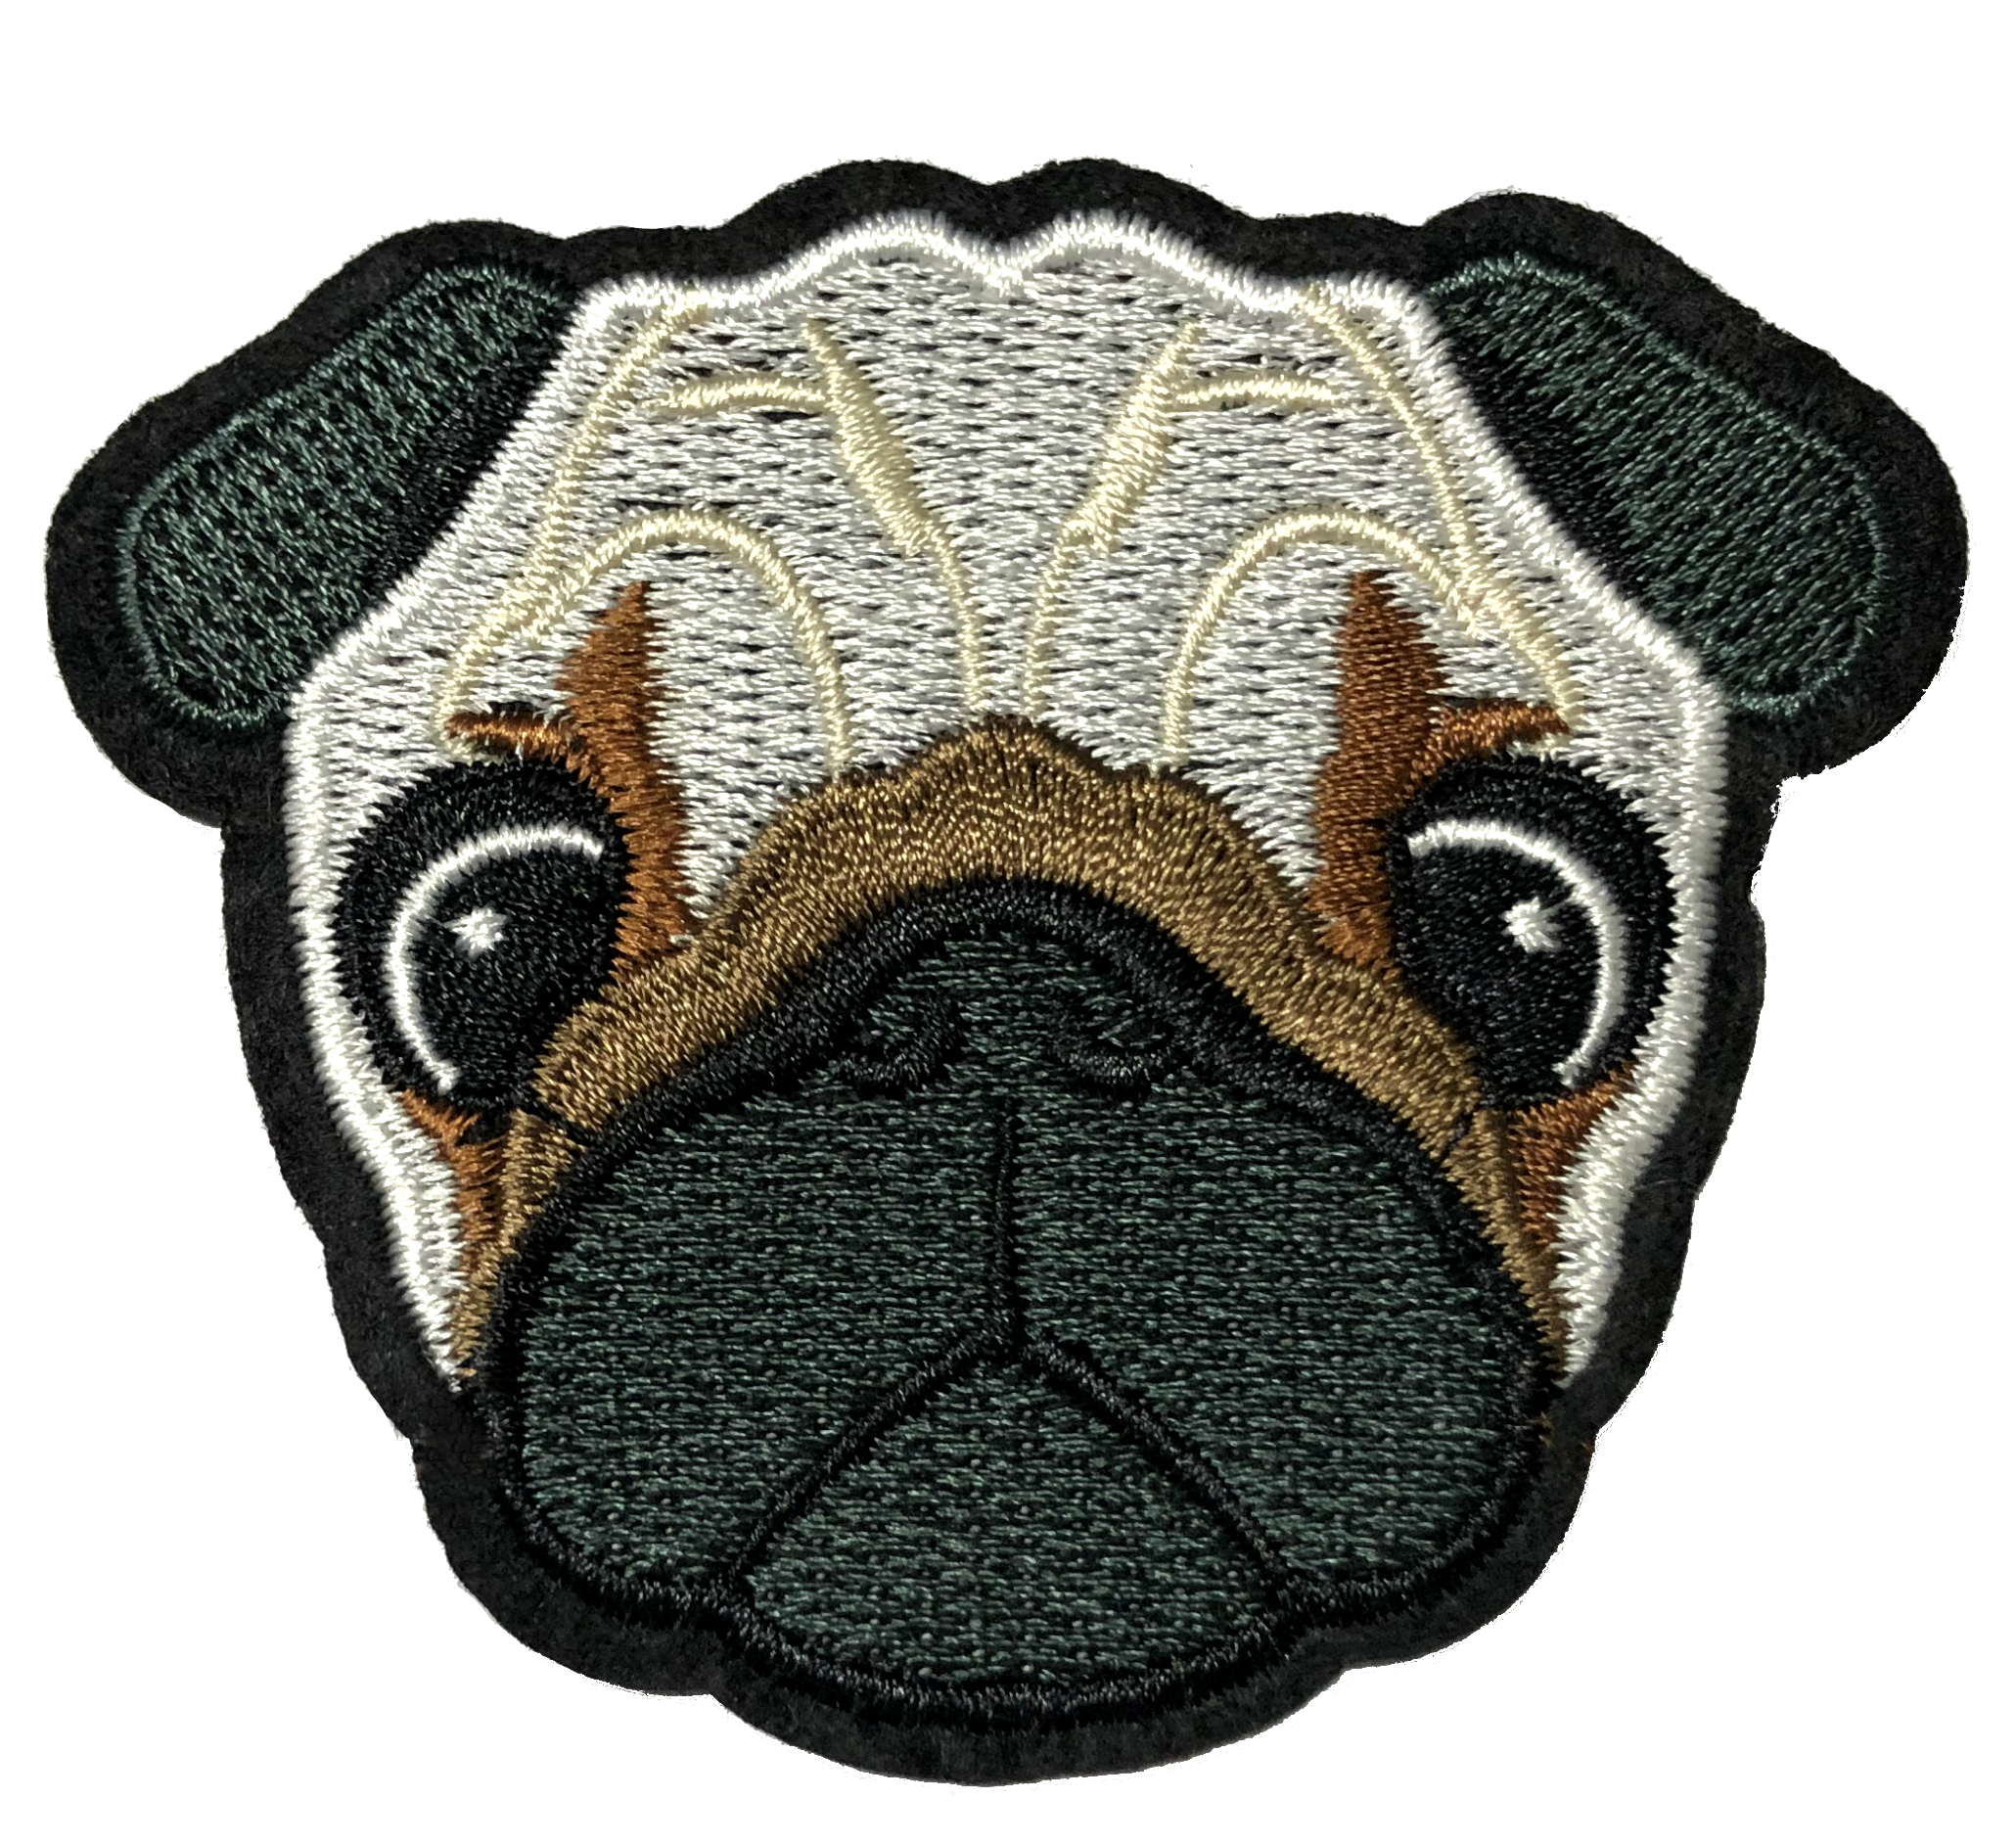 Pug dog patch Pug patch dog Embroidery Patch Iron on Applique Patch Embroideried Patch DIY supply